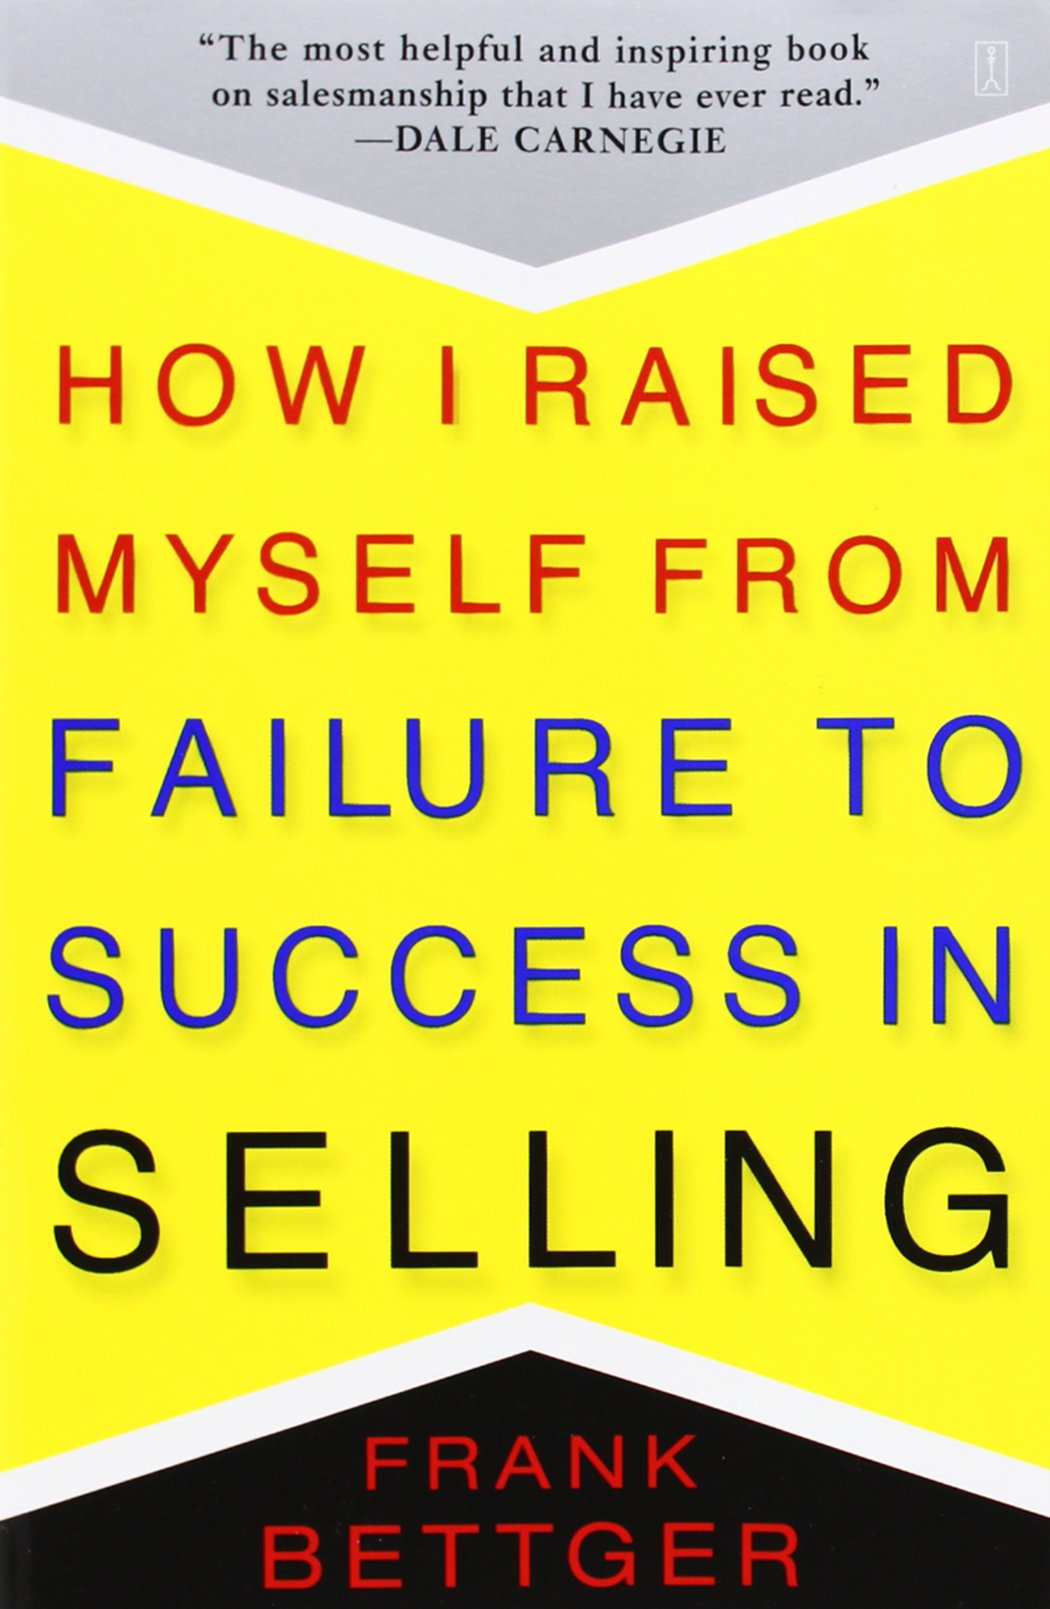 How I Raise Myself From Failure to Success by Frank Bettger